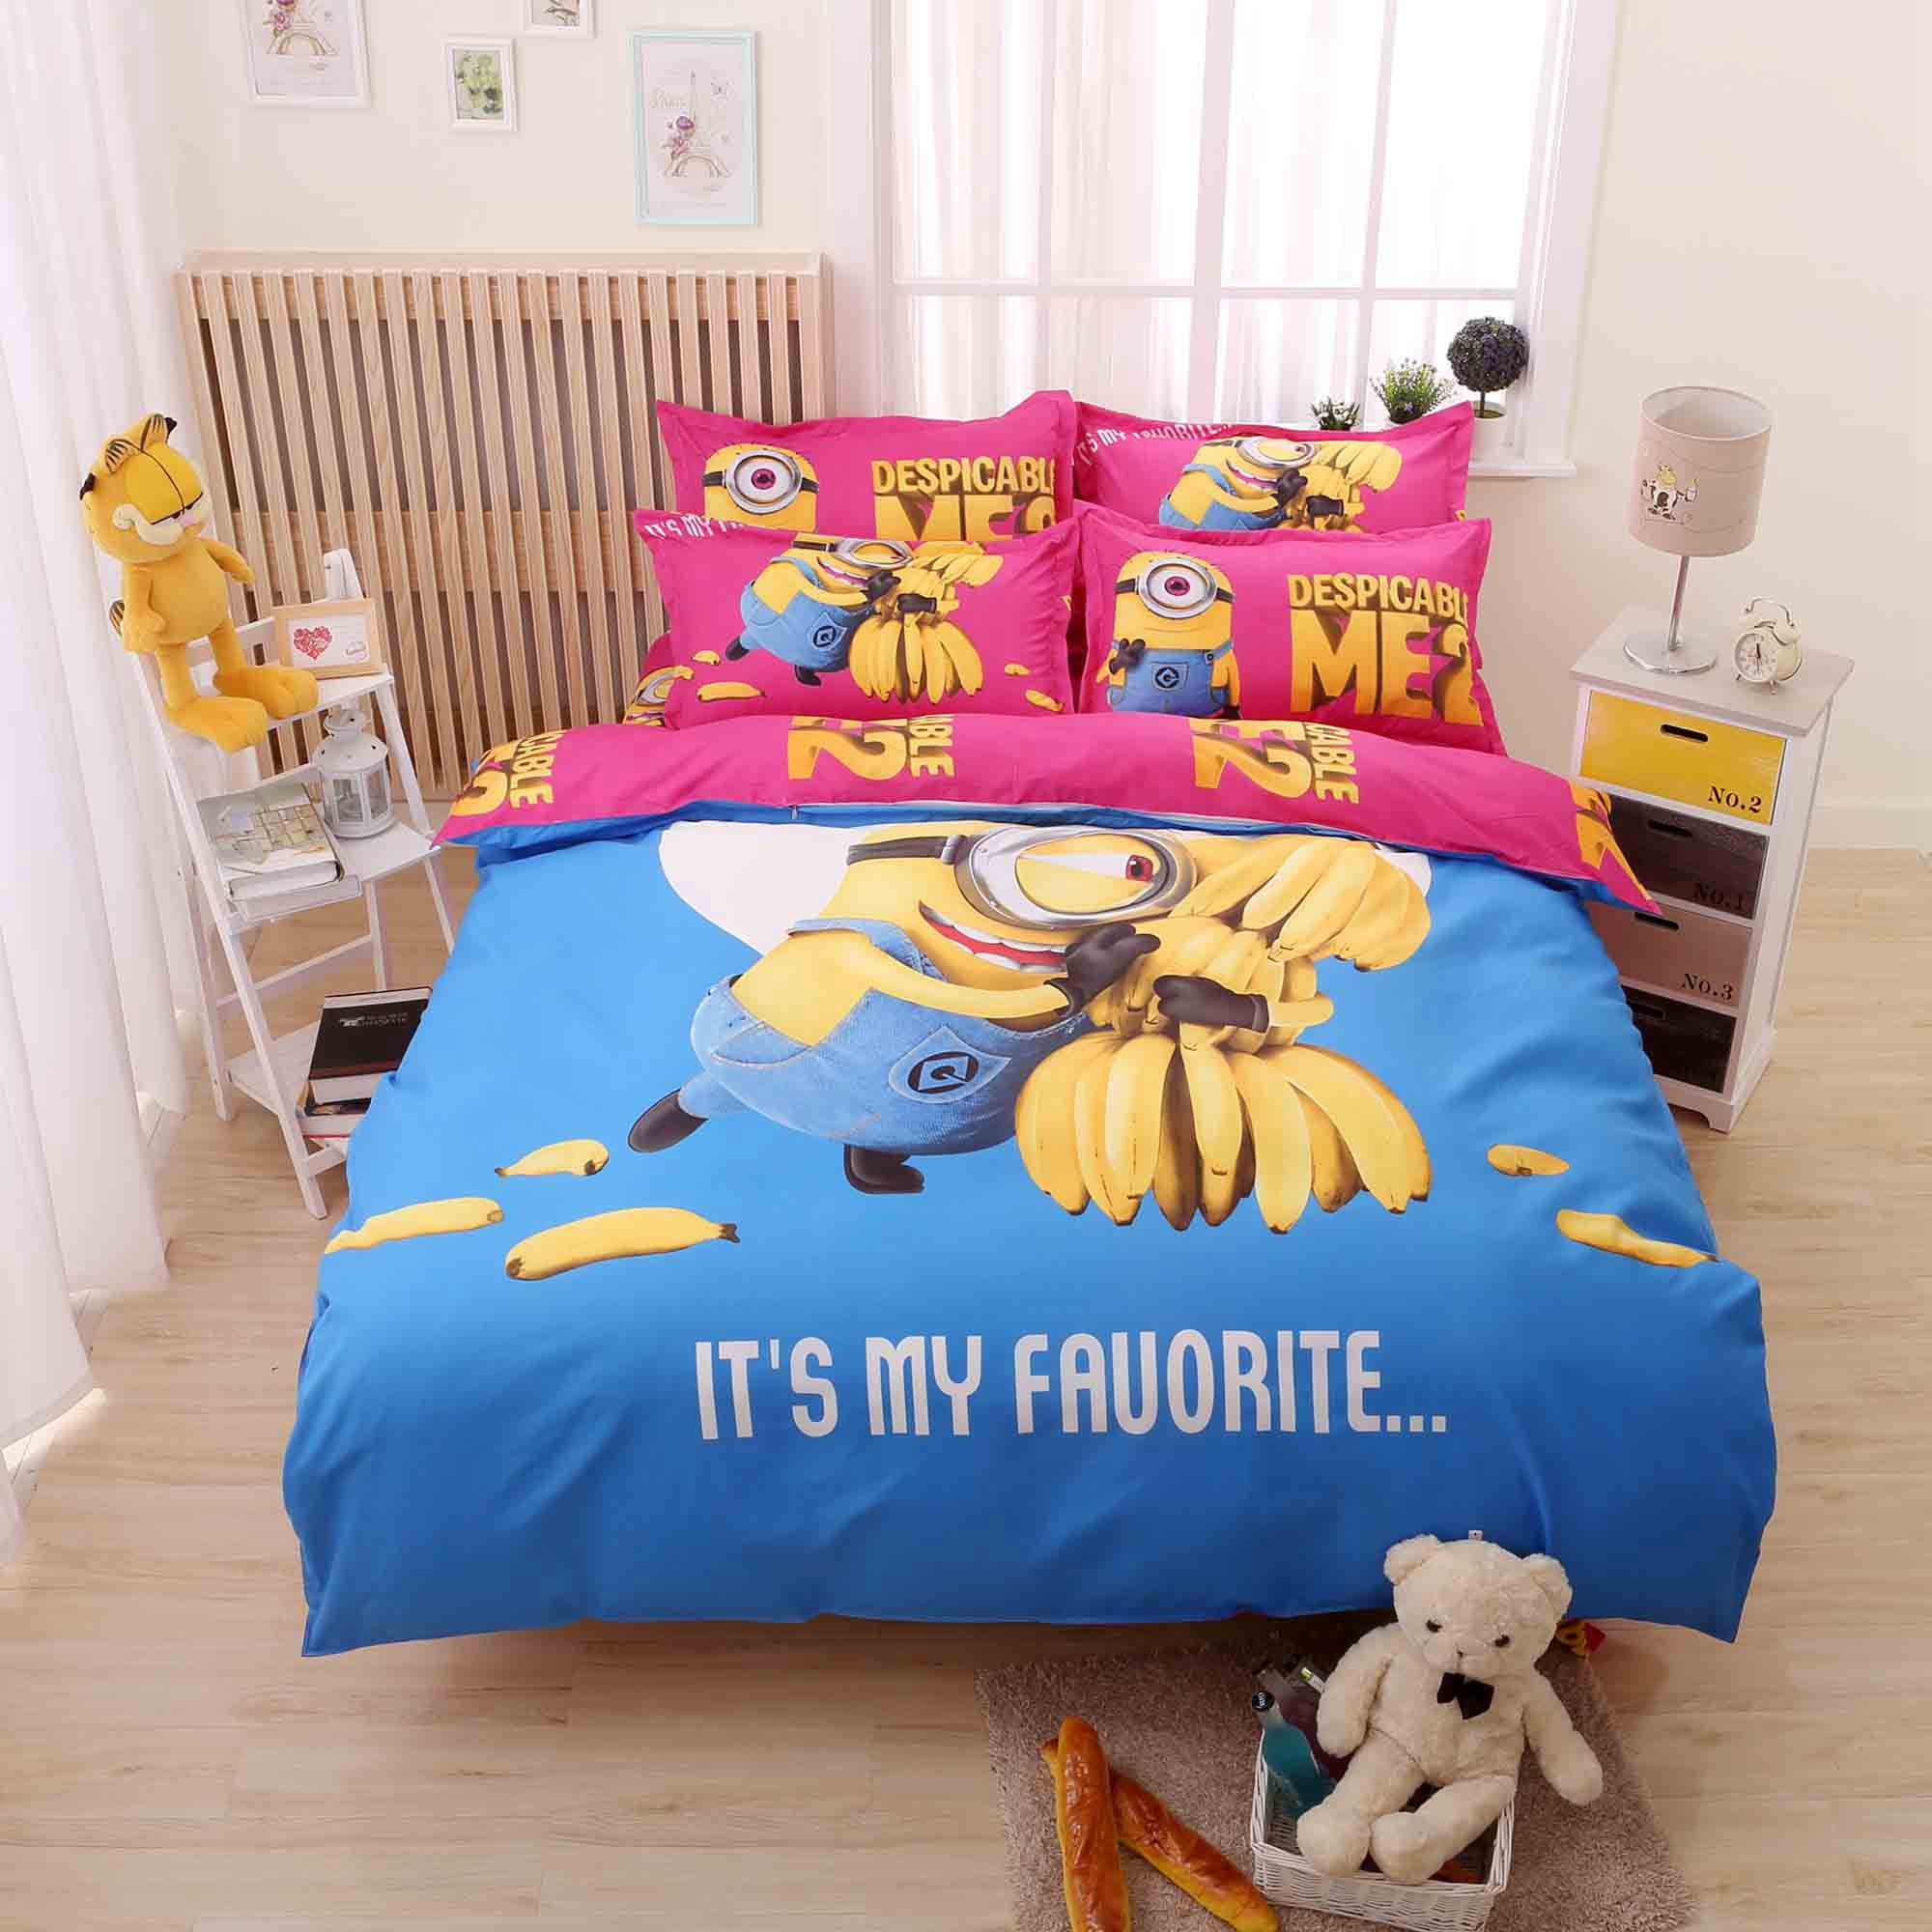 compare prices on covers for kids bed- online shopping/buy low